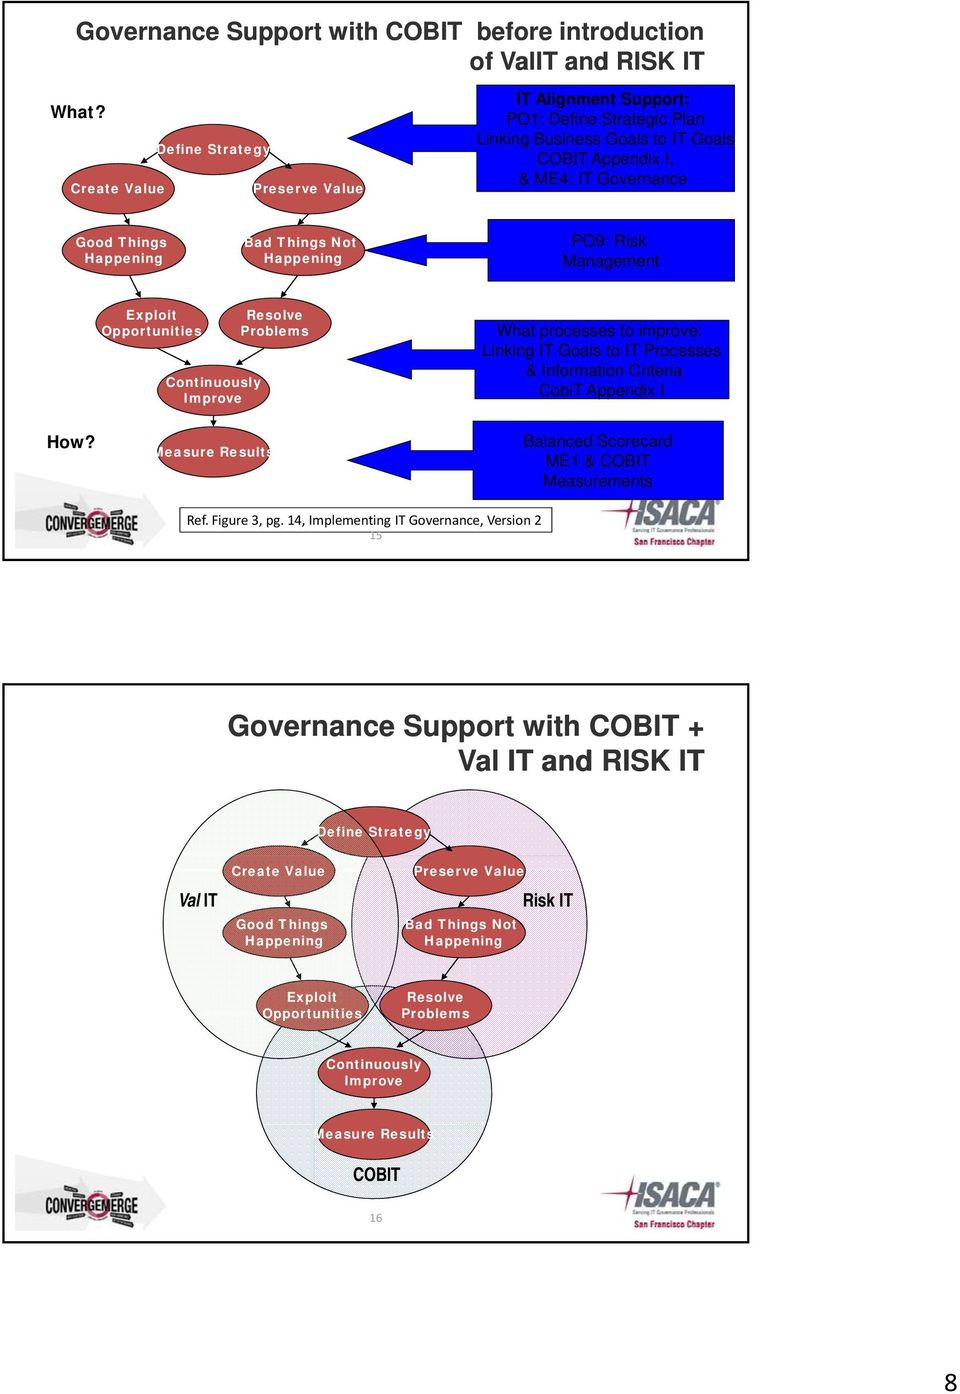 Not Happening PO9: Risk Management Exploit Opportunities Continuously Improve Resolve Problems What processes to improve: Linking IT Goals to IT Processes & Information Criteria CobiT Appendix I How?